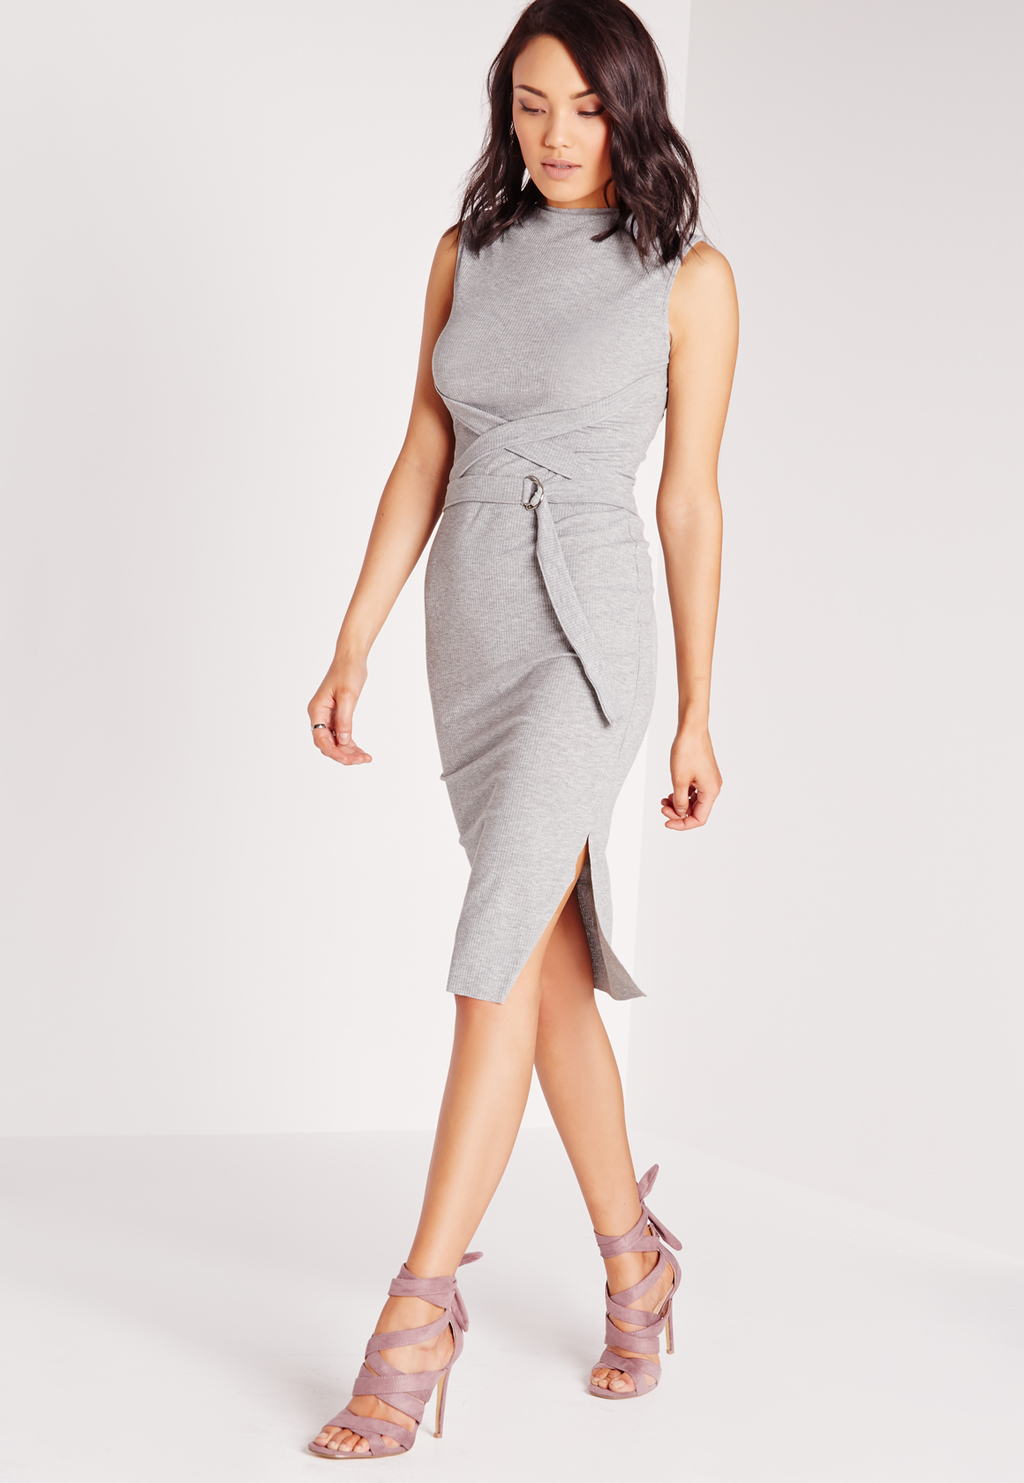 Sleeveless High Neck Wrap Belt Bodycon Dress Grey, Grey - fit: tight; pattern: plain; sleeve style: sleeveless; neckline: high neck; style: bodycon; waist detail: belted waist/tie at waist/drawstring; predominant colour: light grey; occasions: evening; length: on the knee; fibres: polyester/polyamide - stretch; sleeve length: sleeveless; texture group: jersey - clingy; pattern type: fabric; season: s/s 2016